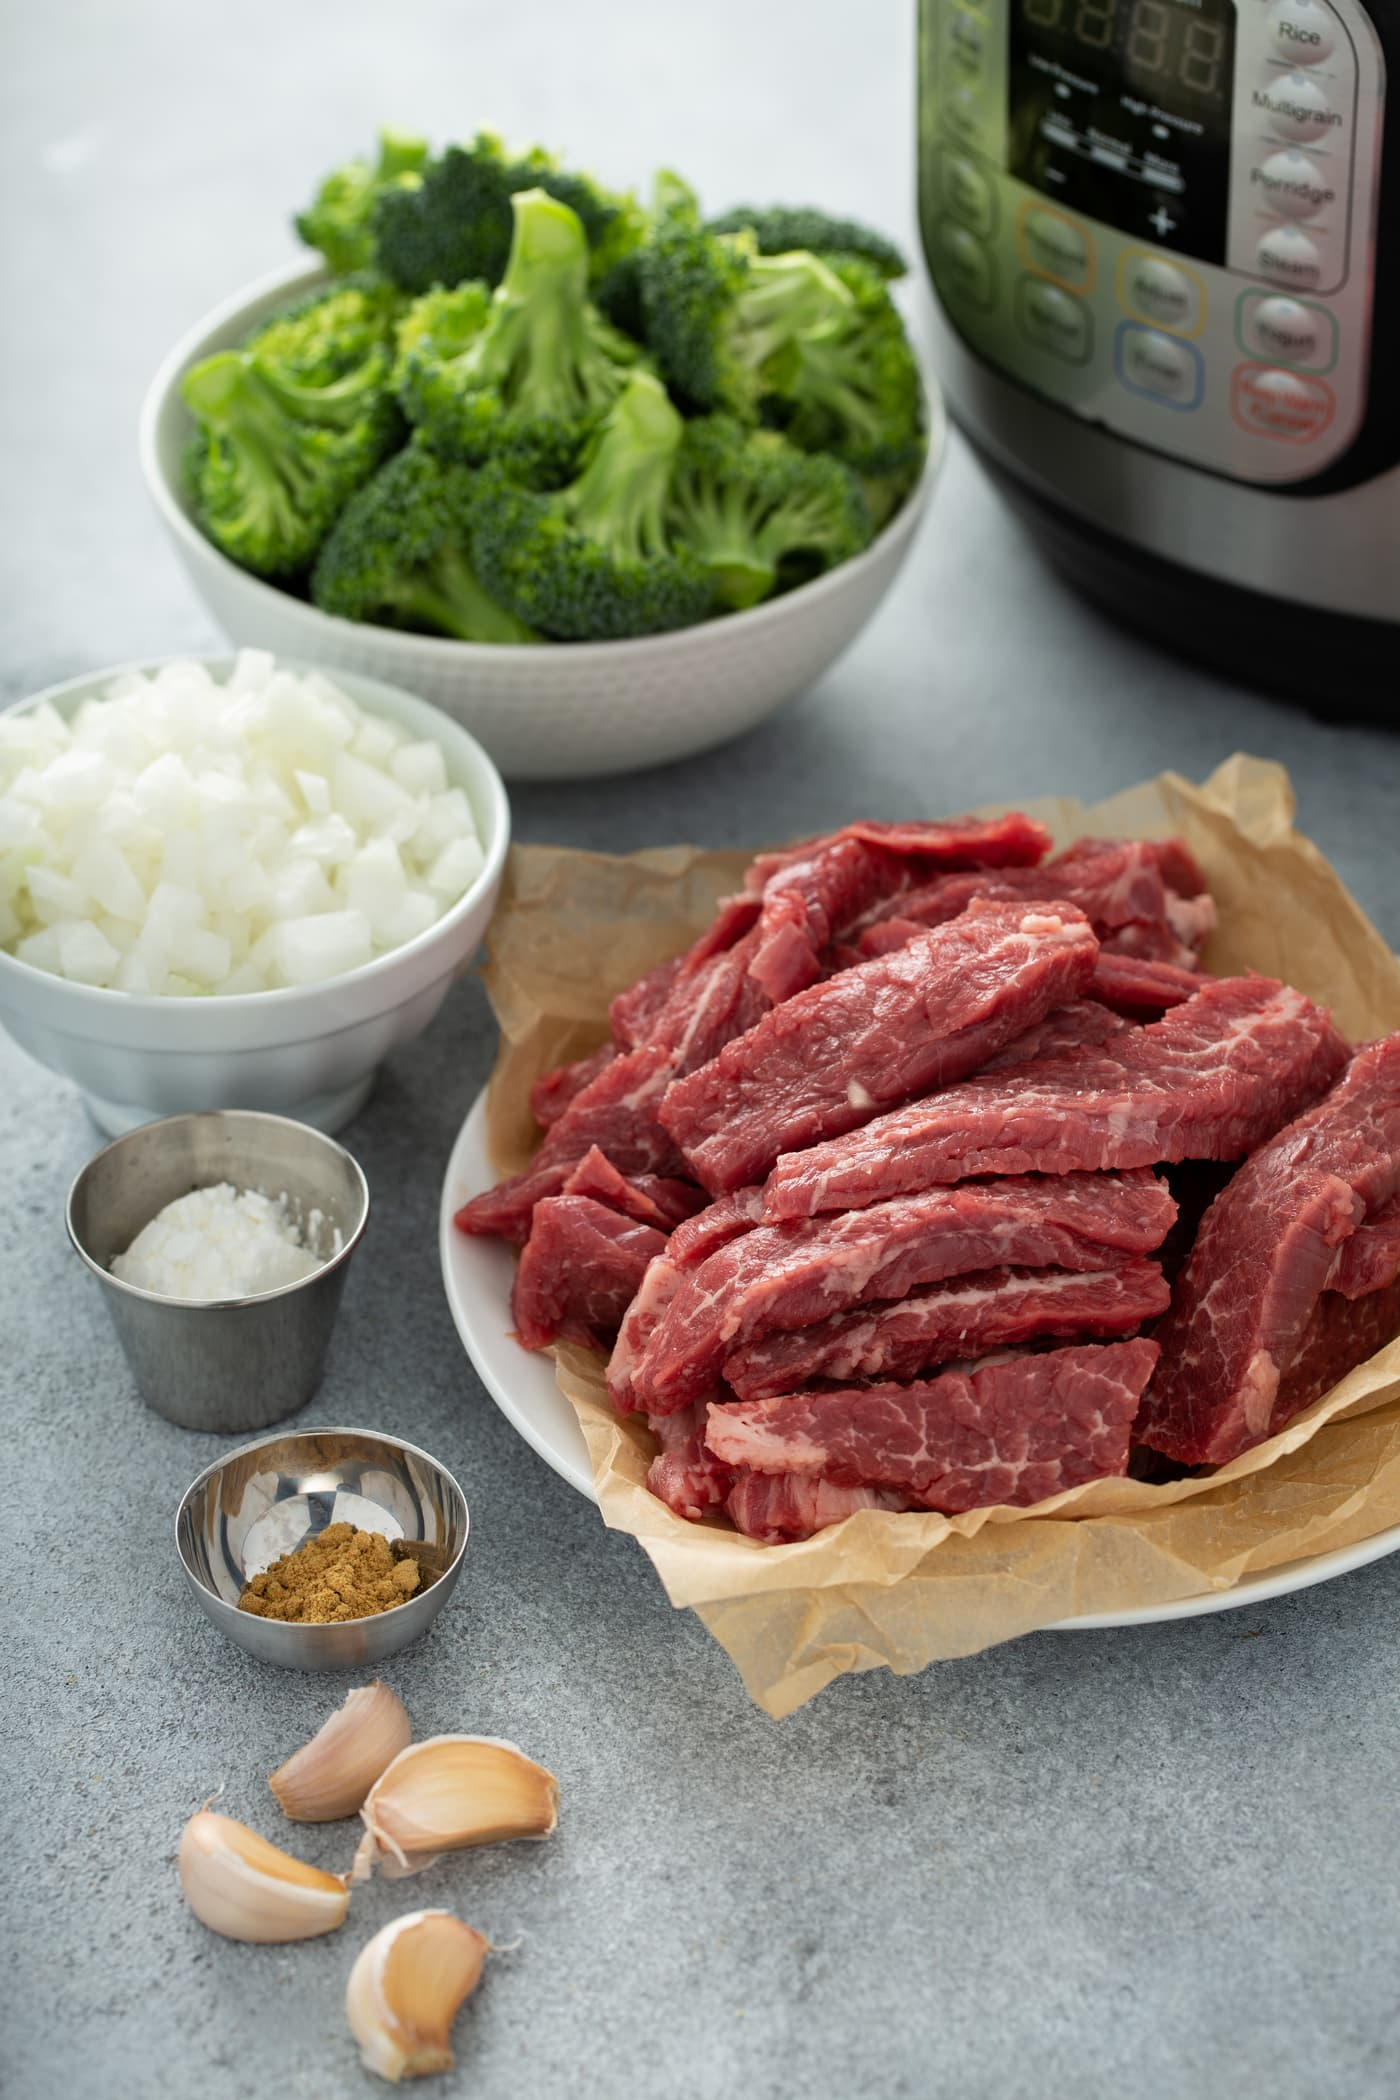 A photo of the ingredients needed to make beef and broccoli with an Instant Pot in the background. The ingredients are in separate bowls, including broccoli florets, chopped onion, sliced raw flank steak, cornstarch, ground ginger and garlic cloves.